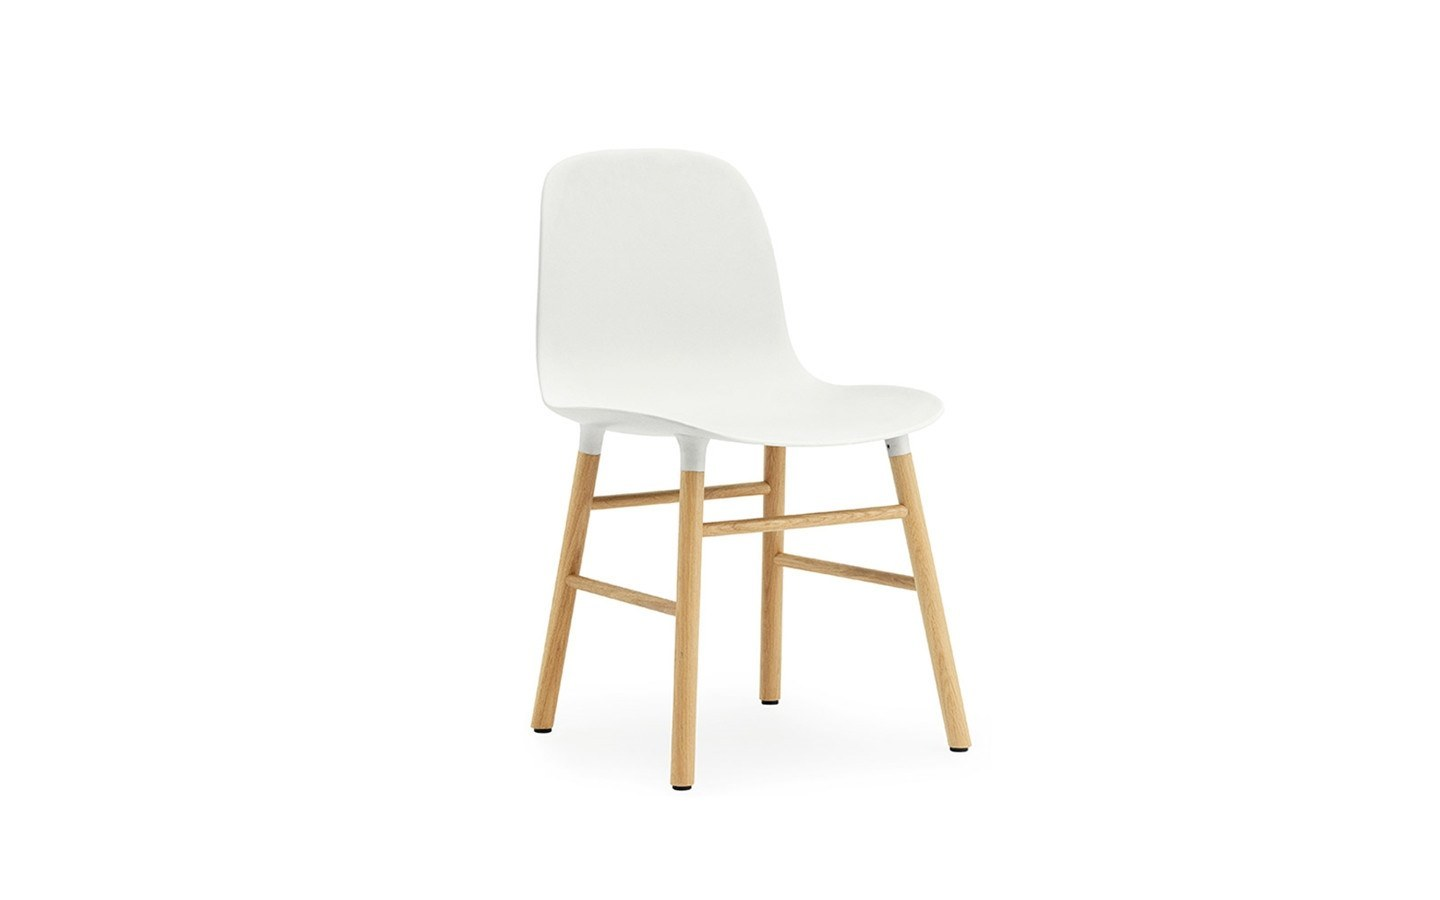 NORMANN COPENHAGEN FORM CHAIR-STEEL BASE - Eclectic Cool  - 4